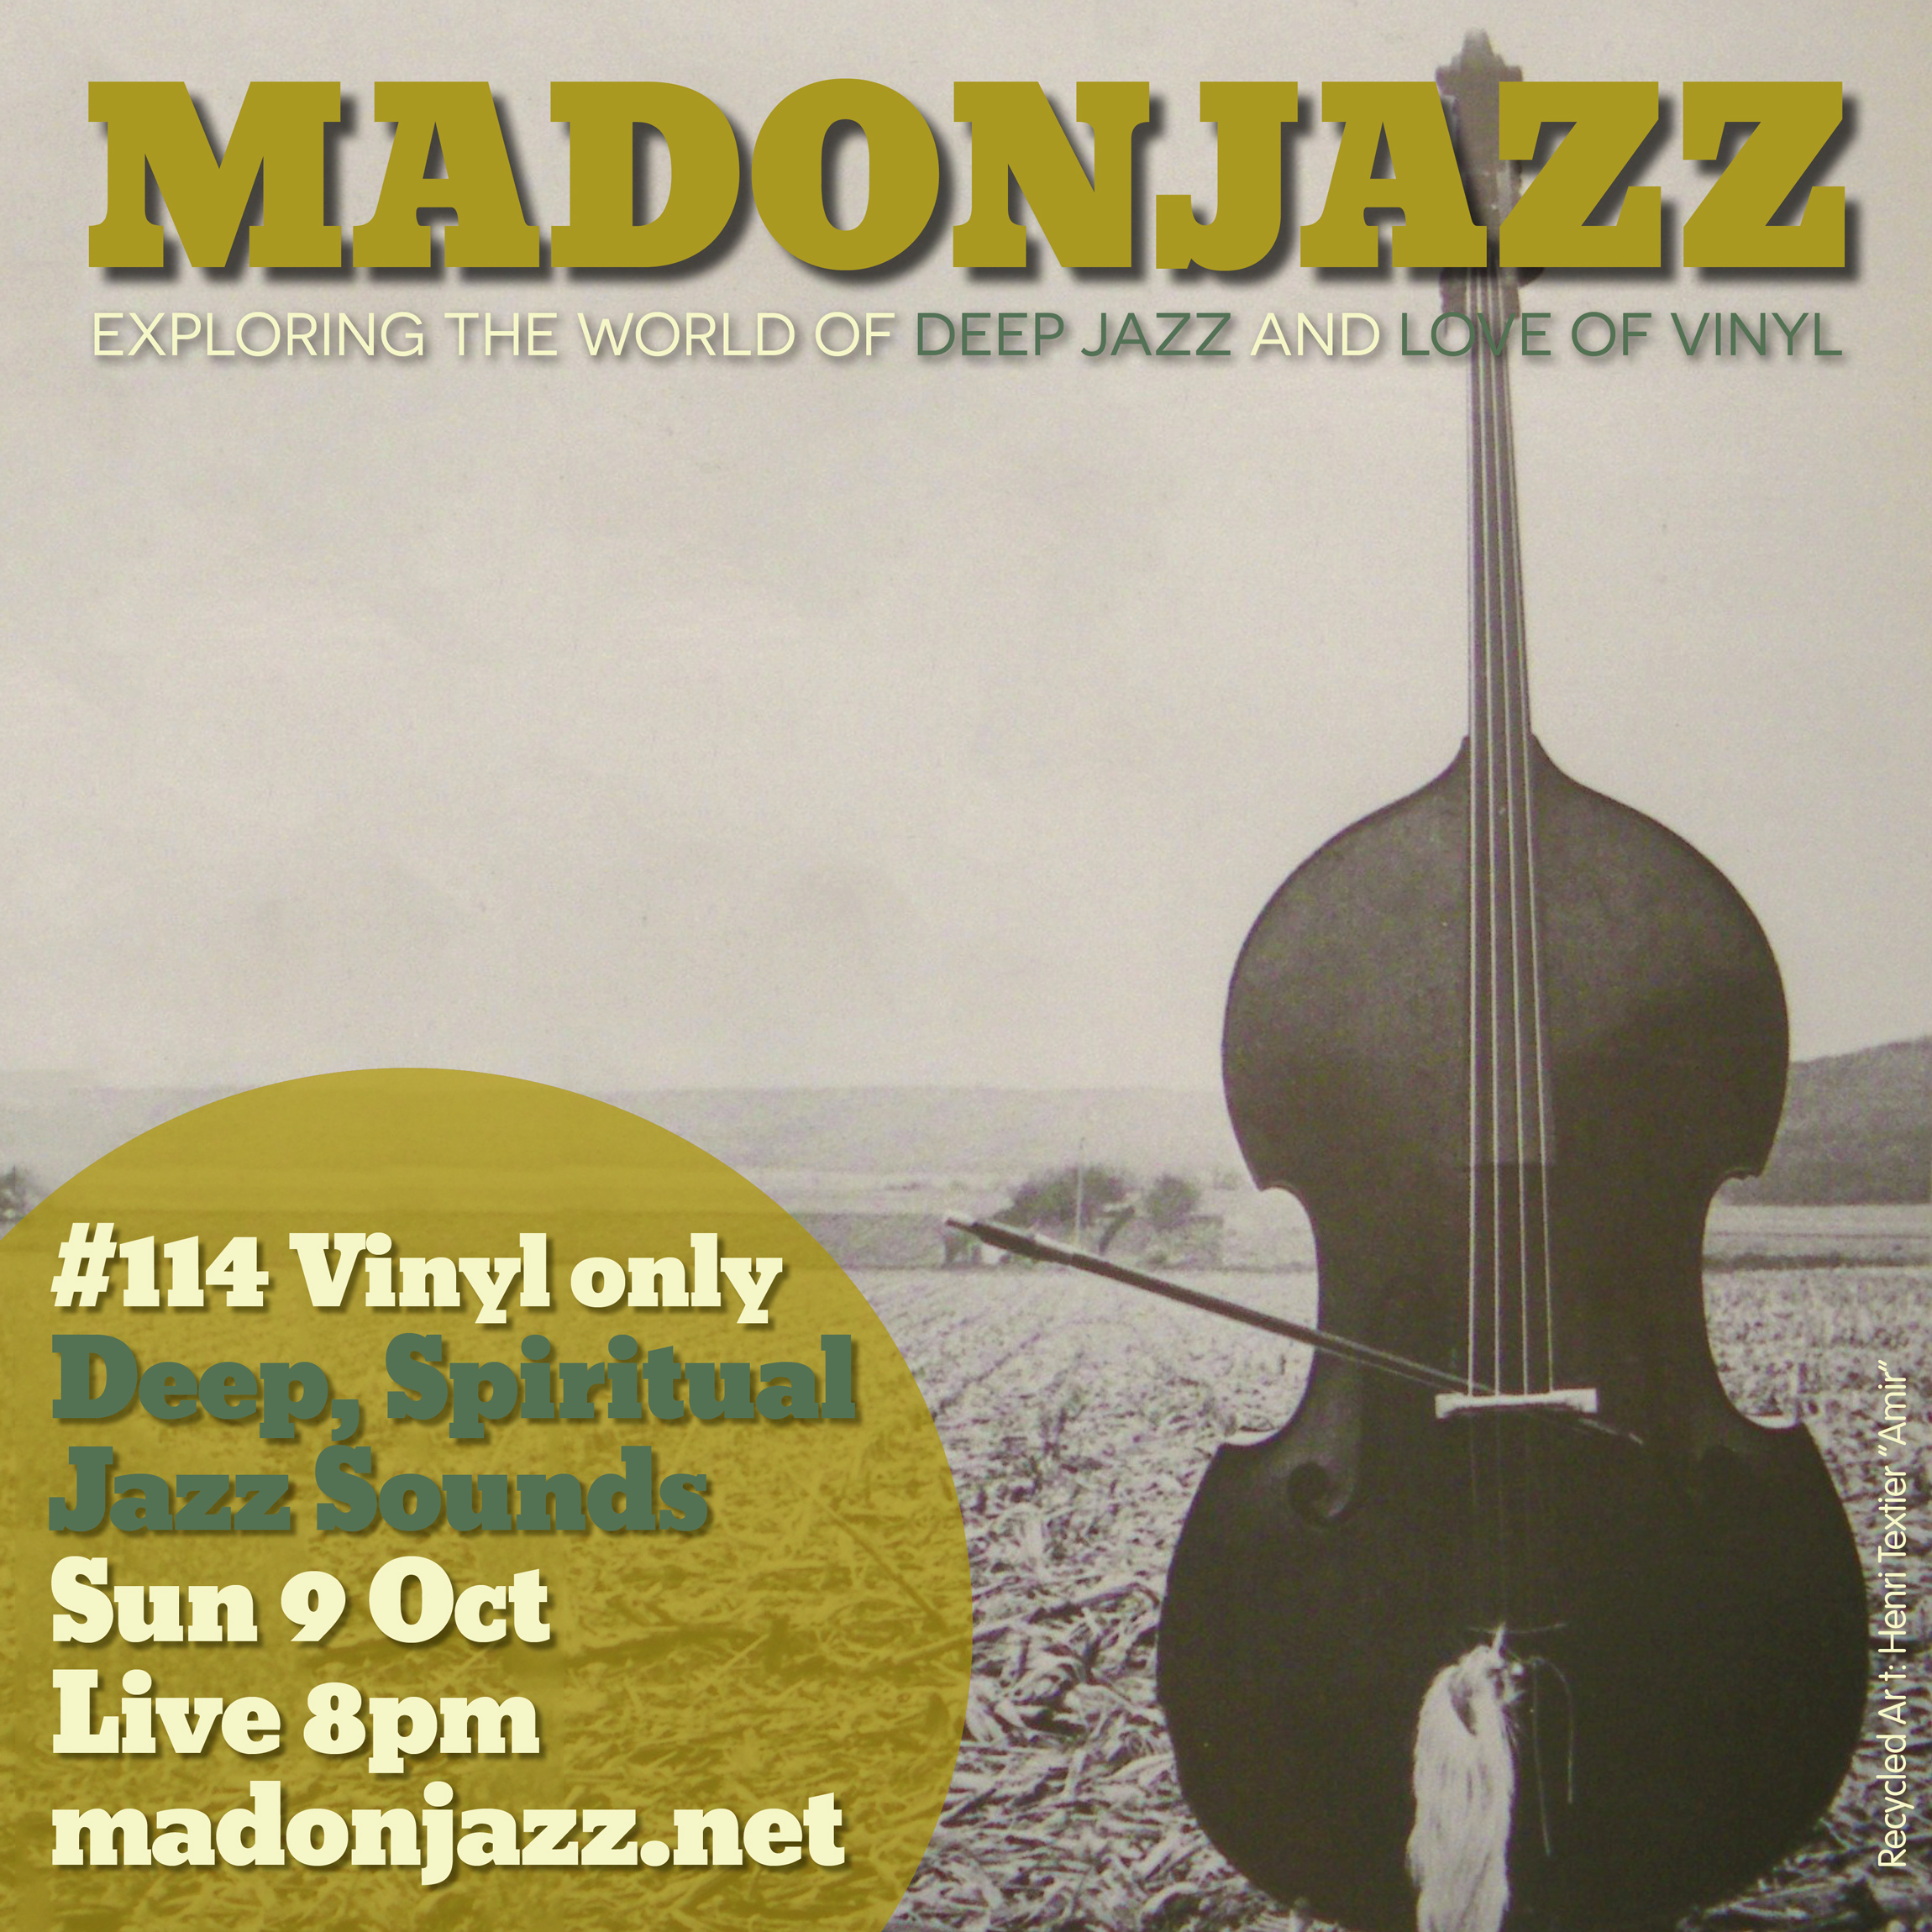 MADONJAZZ #114 - Deep, Spiritual Jazz Sounds